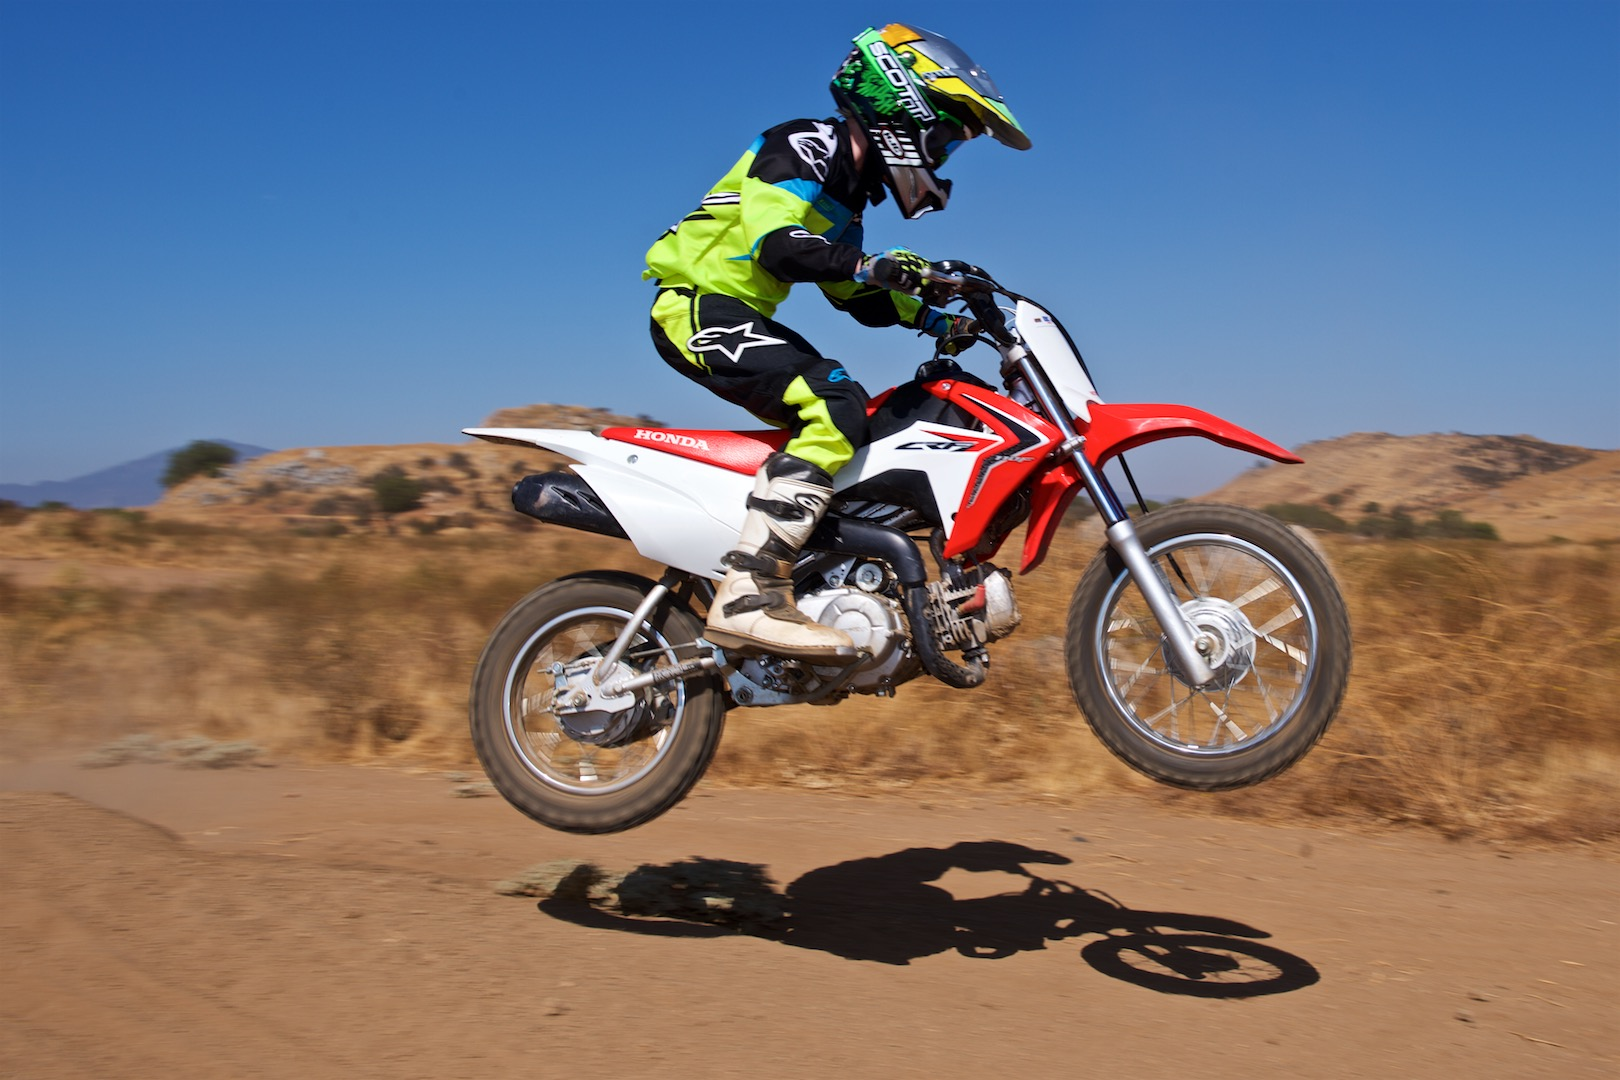 2017 Honda Crf110f Vs Yamaha Ttr110e Comparison  Kids